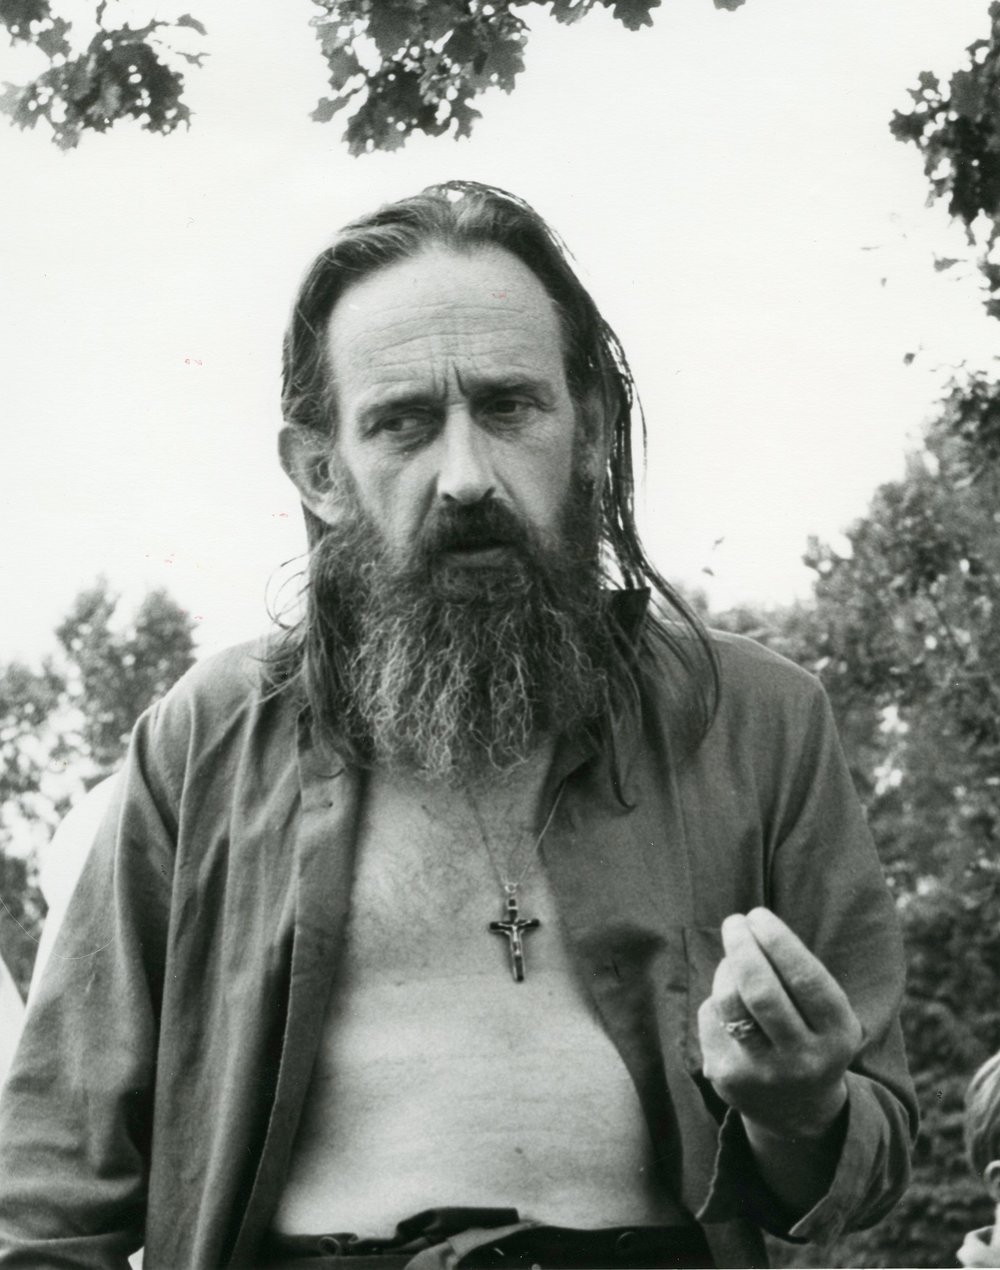 James K. Baxter at Horo Horo Students Camp, 1971, photographed by Ans Westra